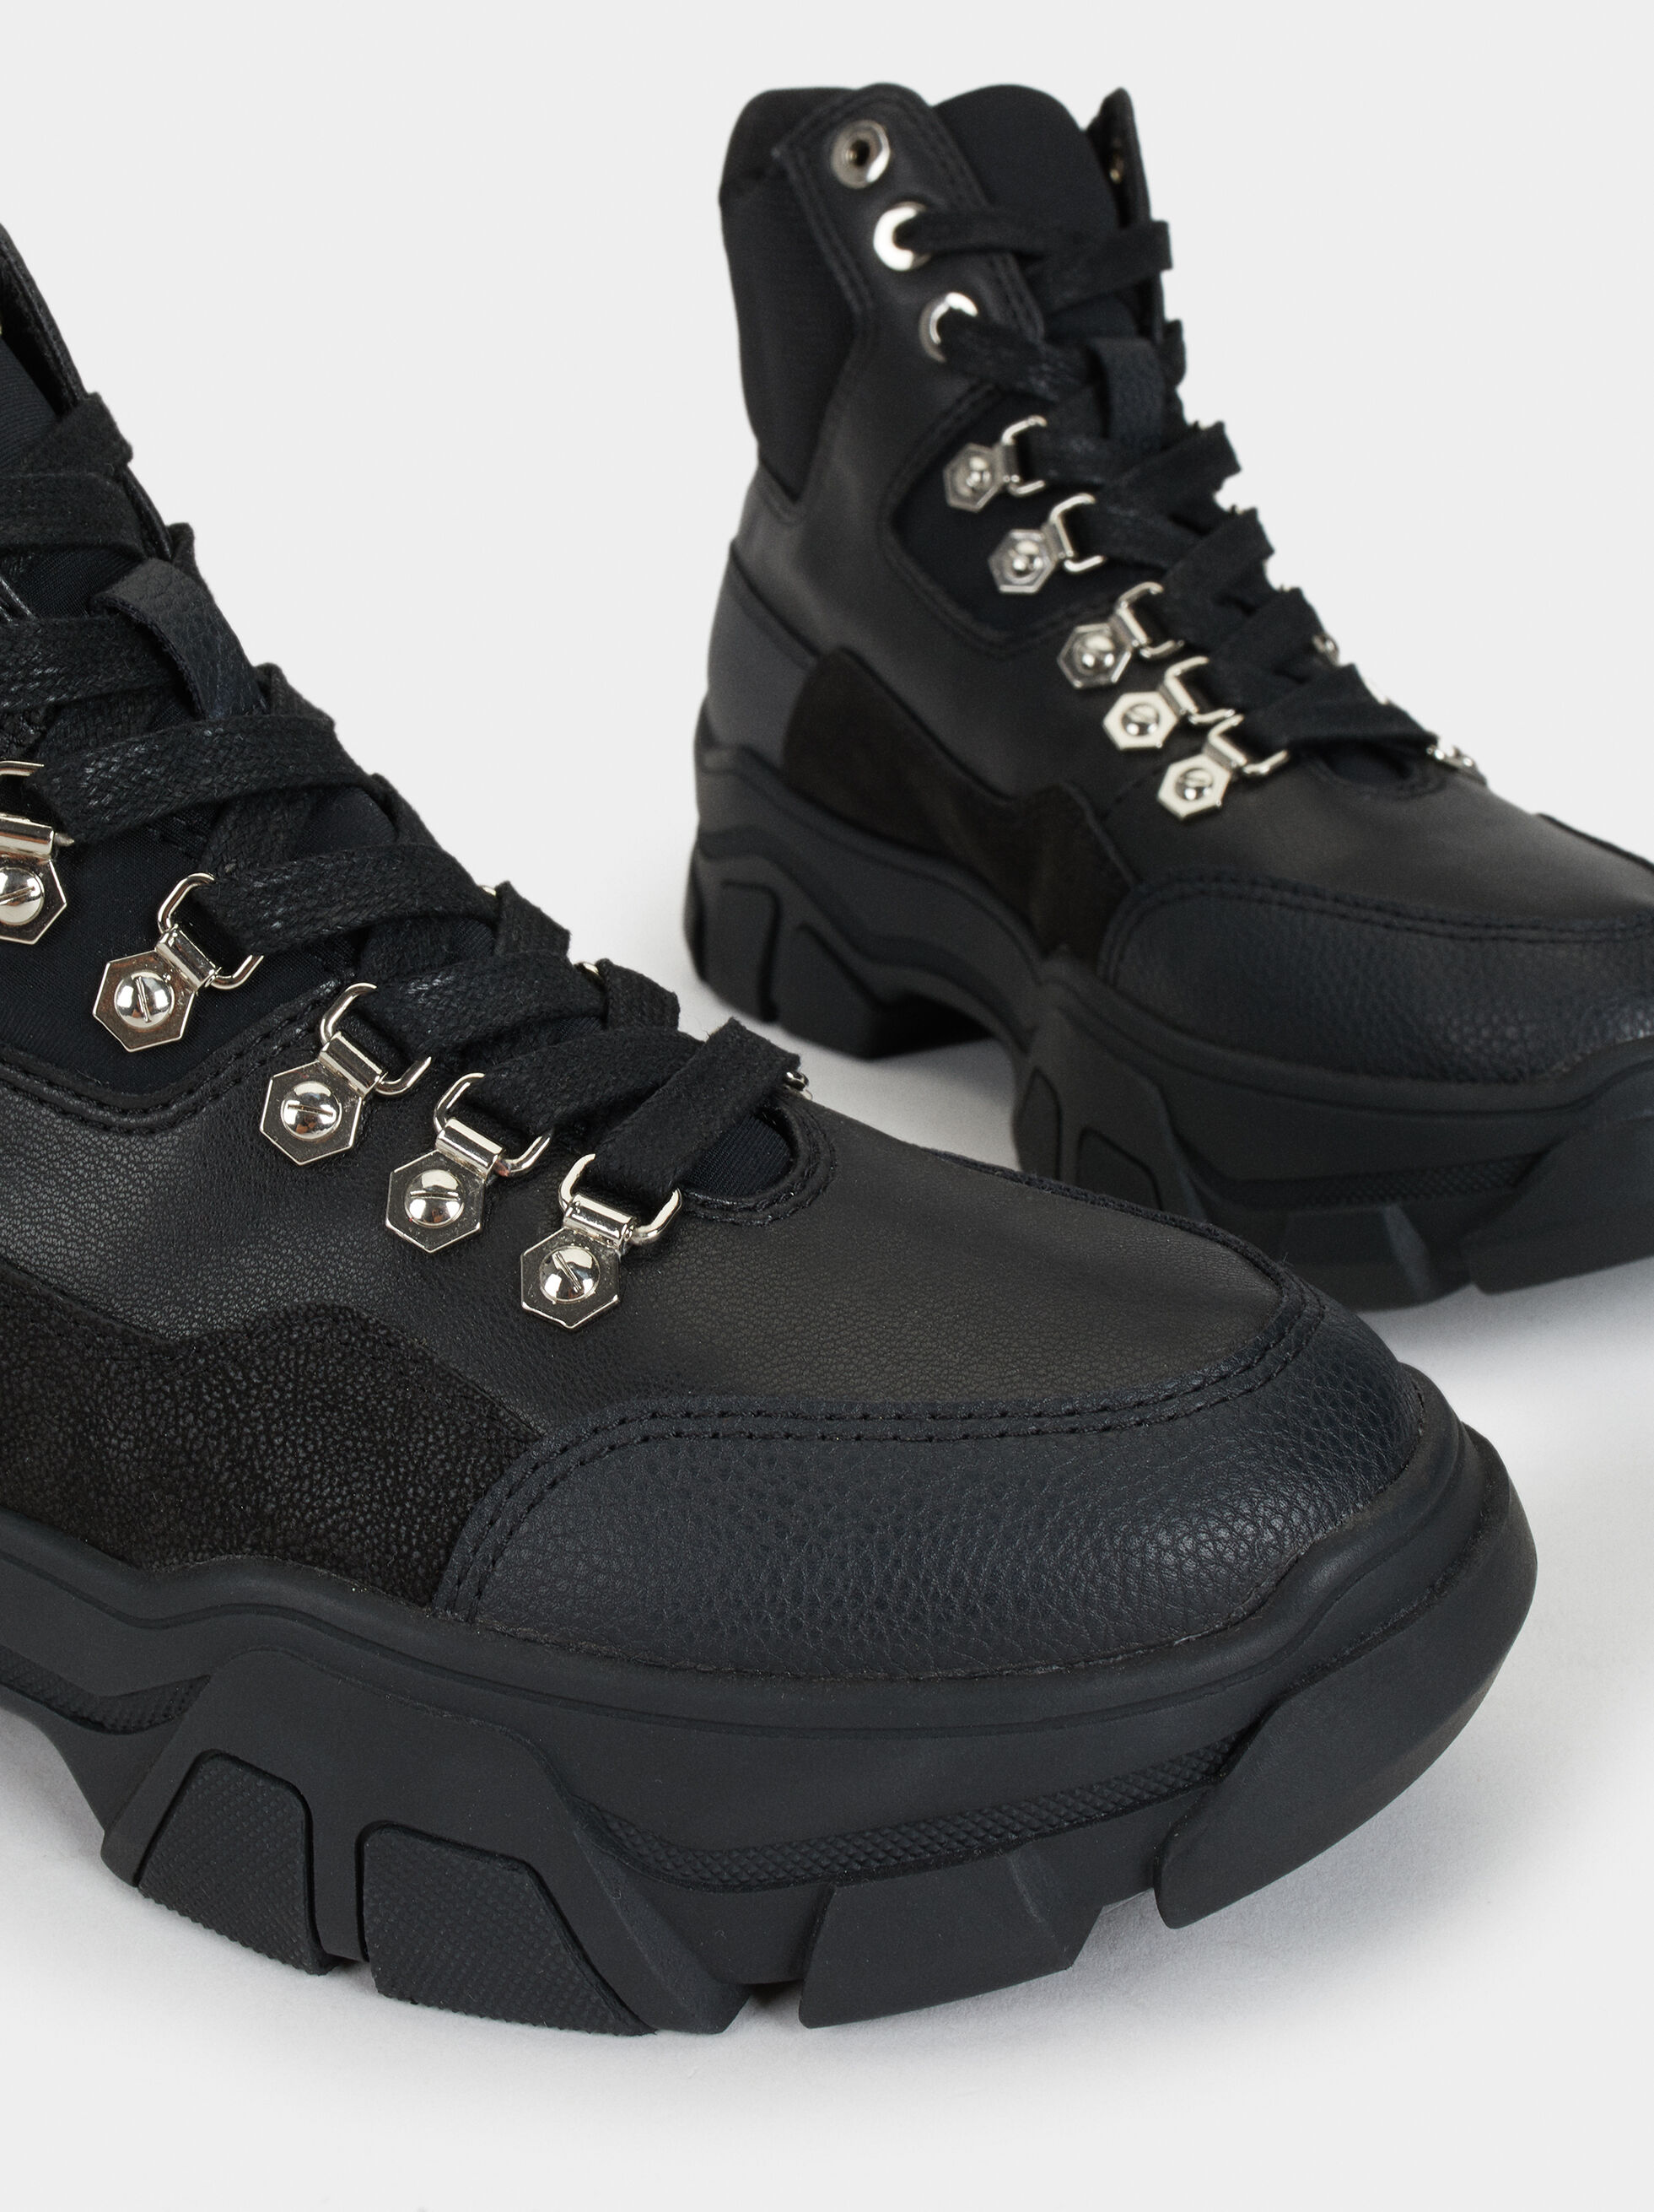 Online Exclusive Mountain-Style Sneakers, Black, hi-res